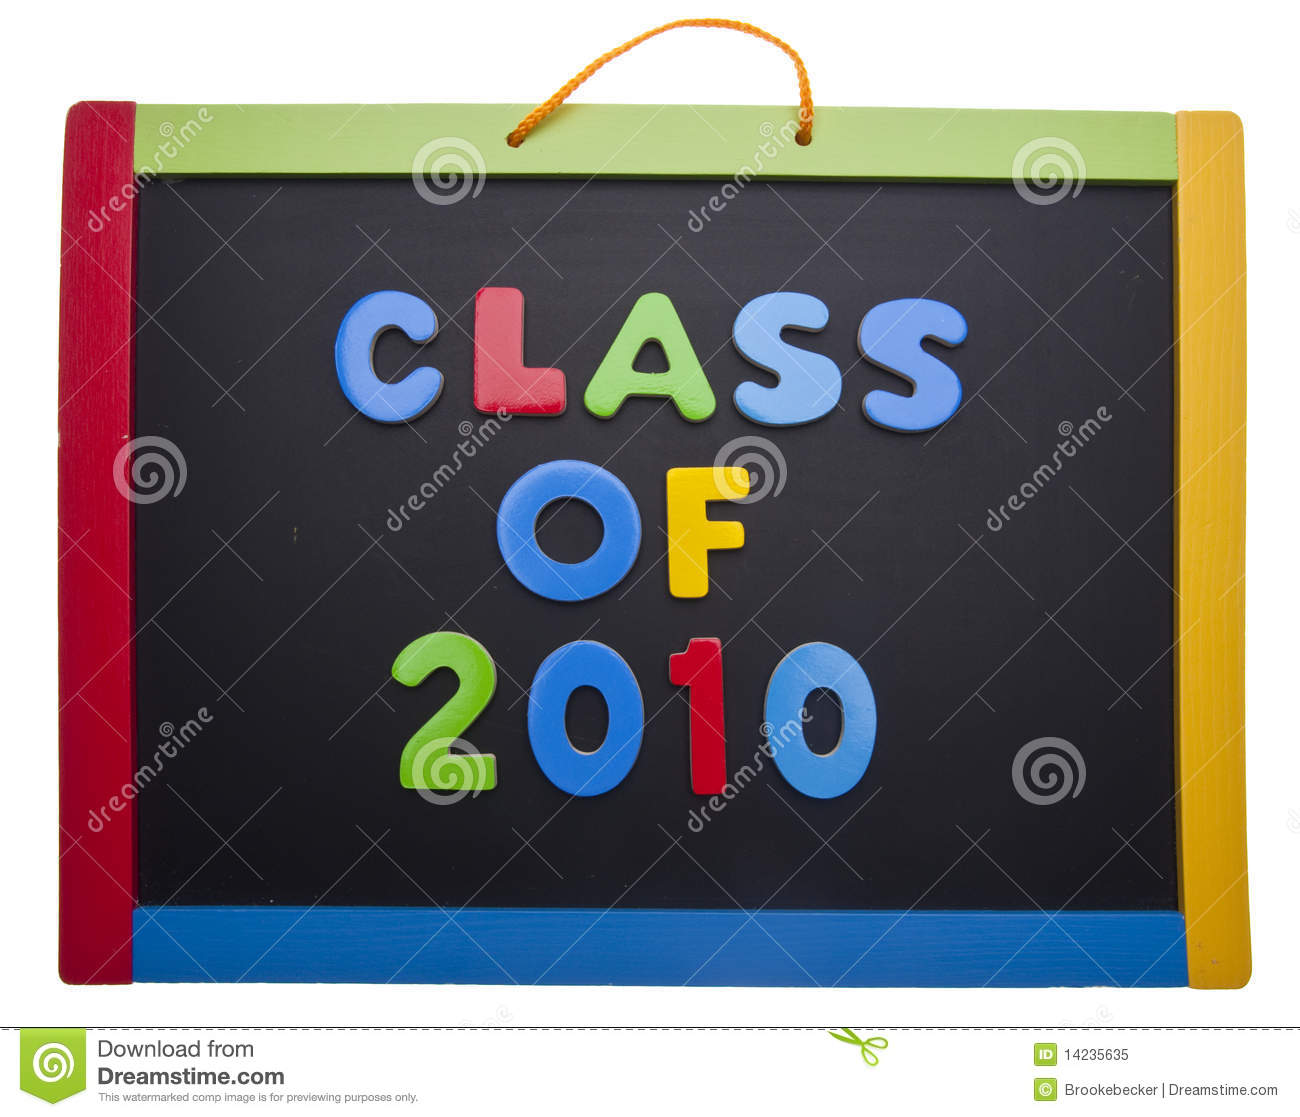 Class Of 2010 Royalty Free Stock Photo.